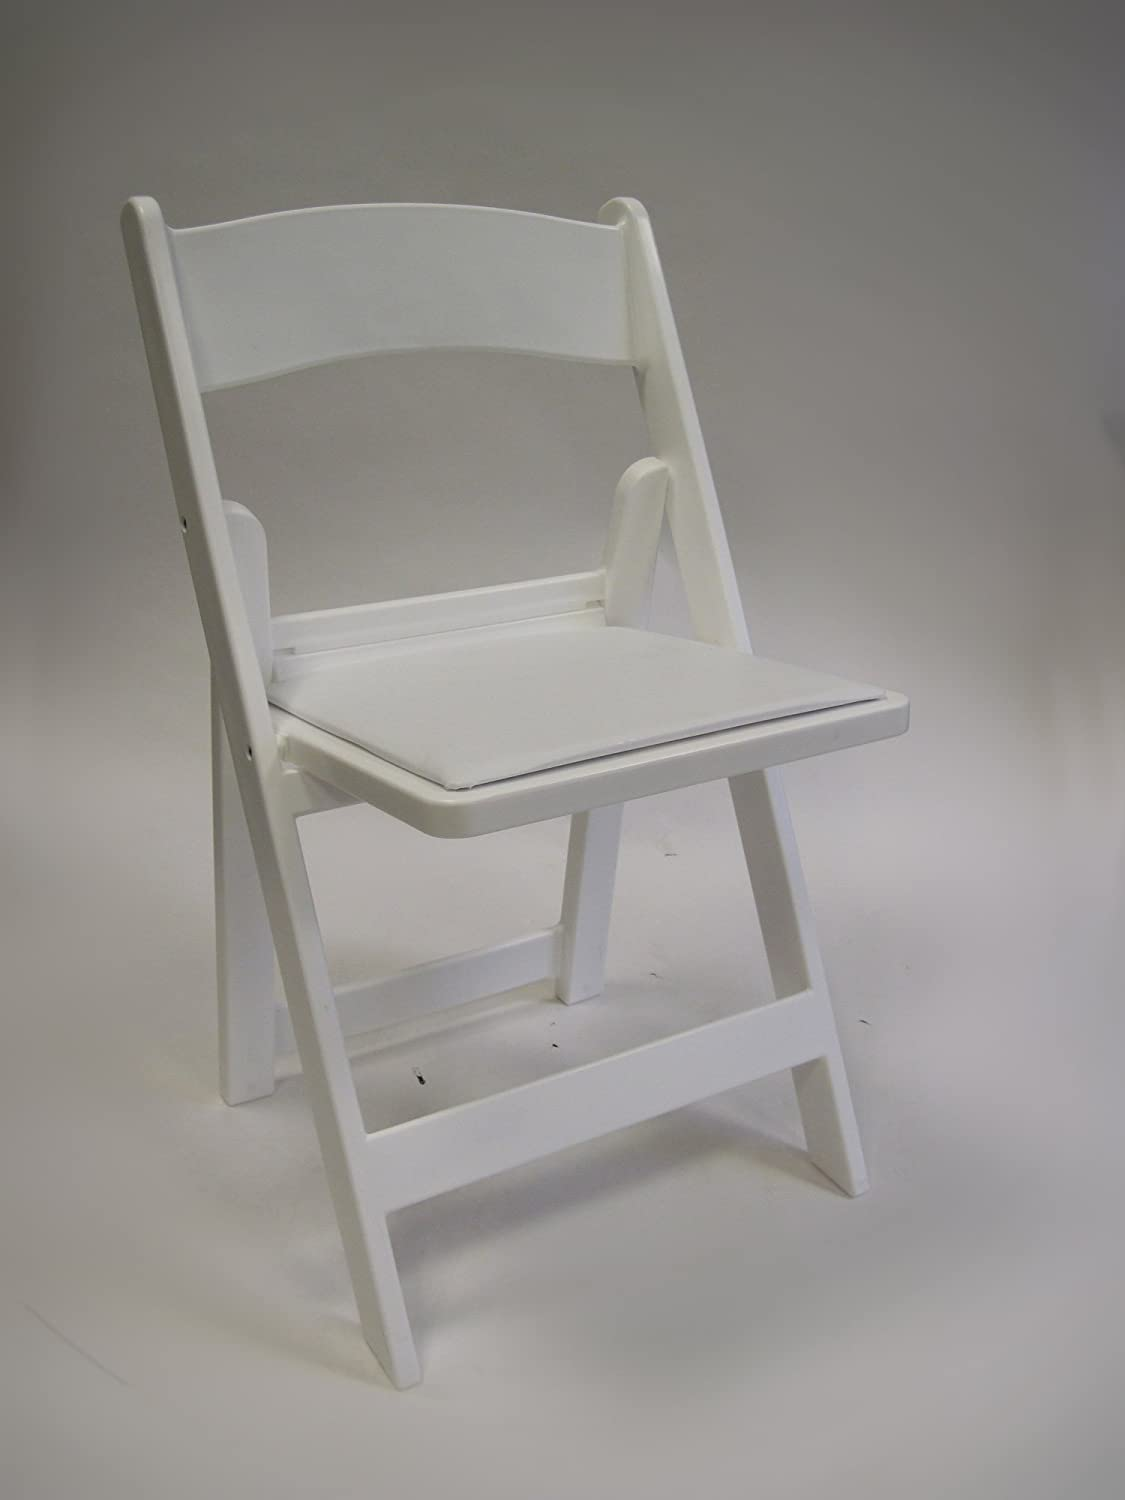 White resin folding chairs - White Resin Folding Chairs 31